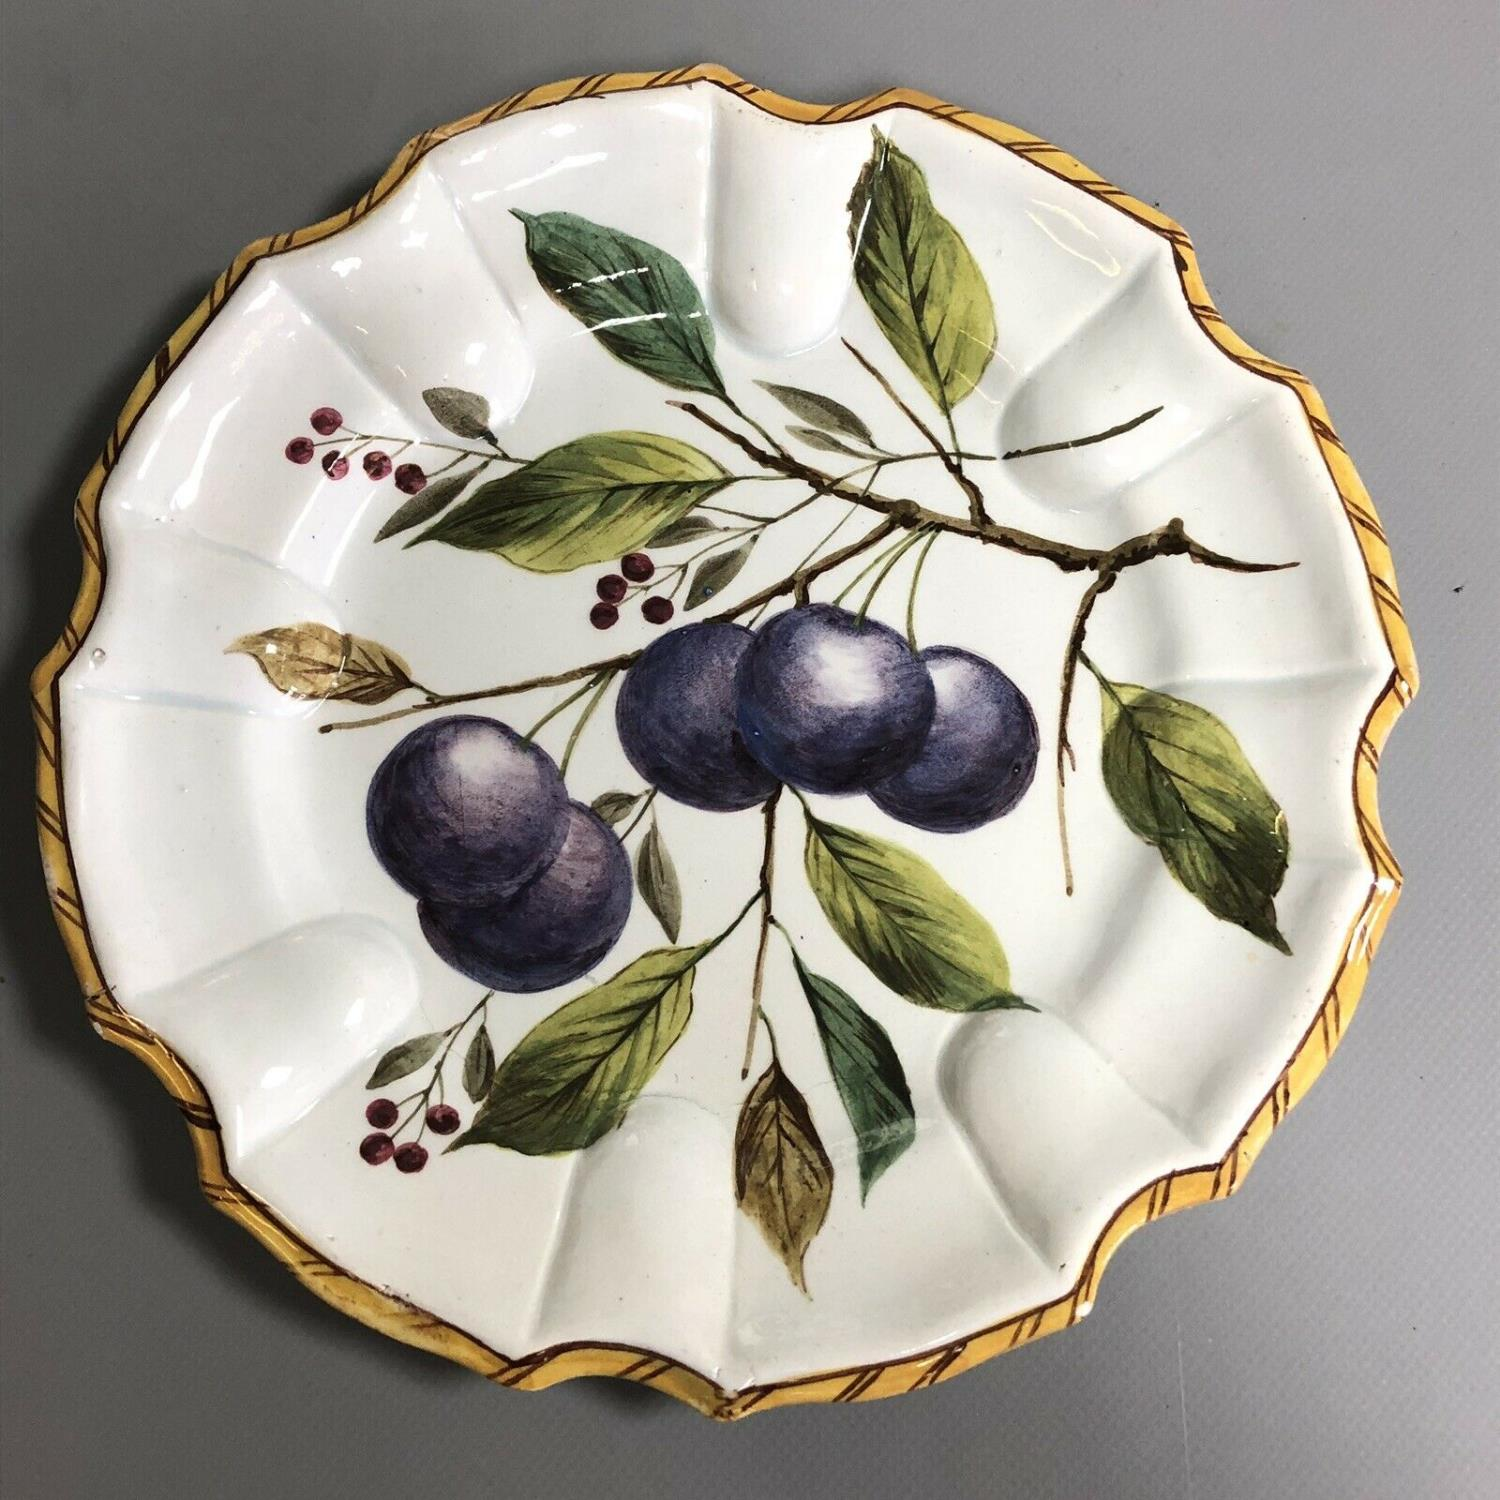 Lot 18 - A set of three antique Continental pottery plates hand painted with fruits